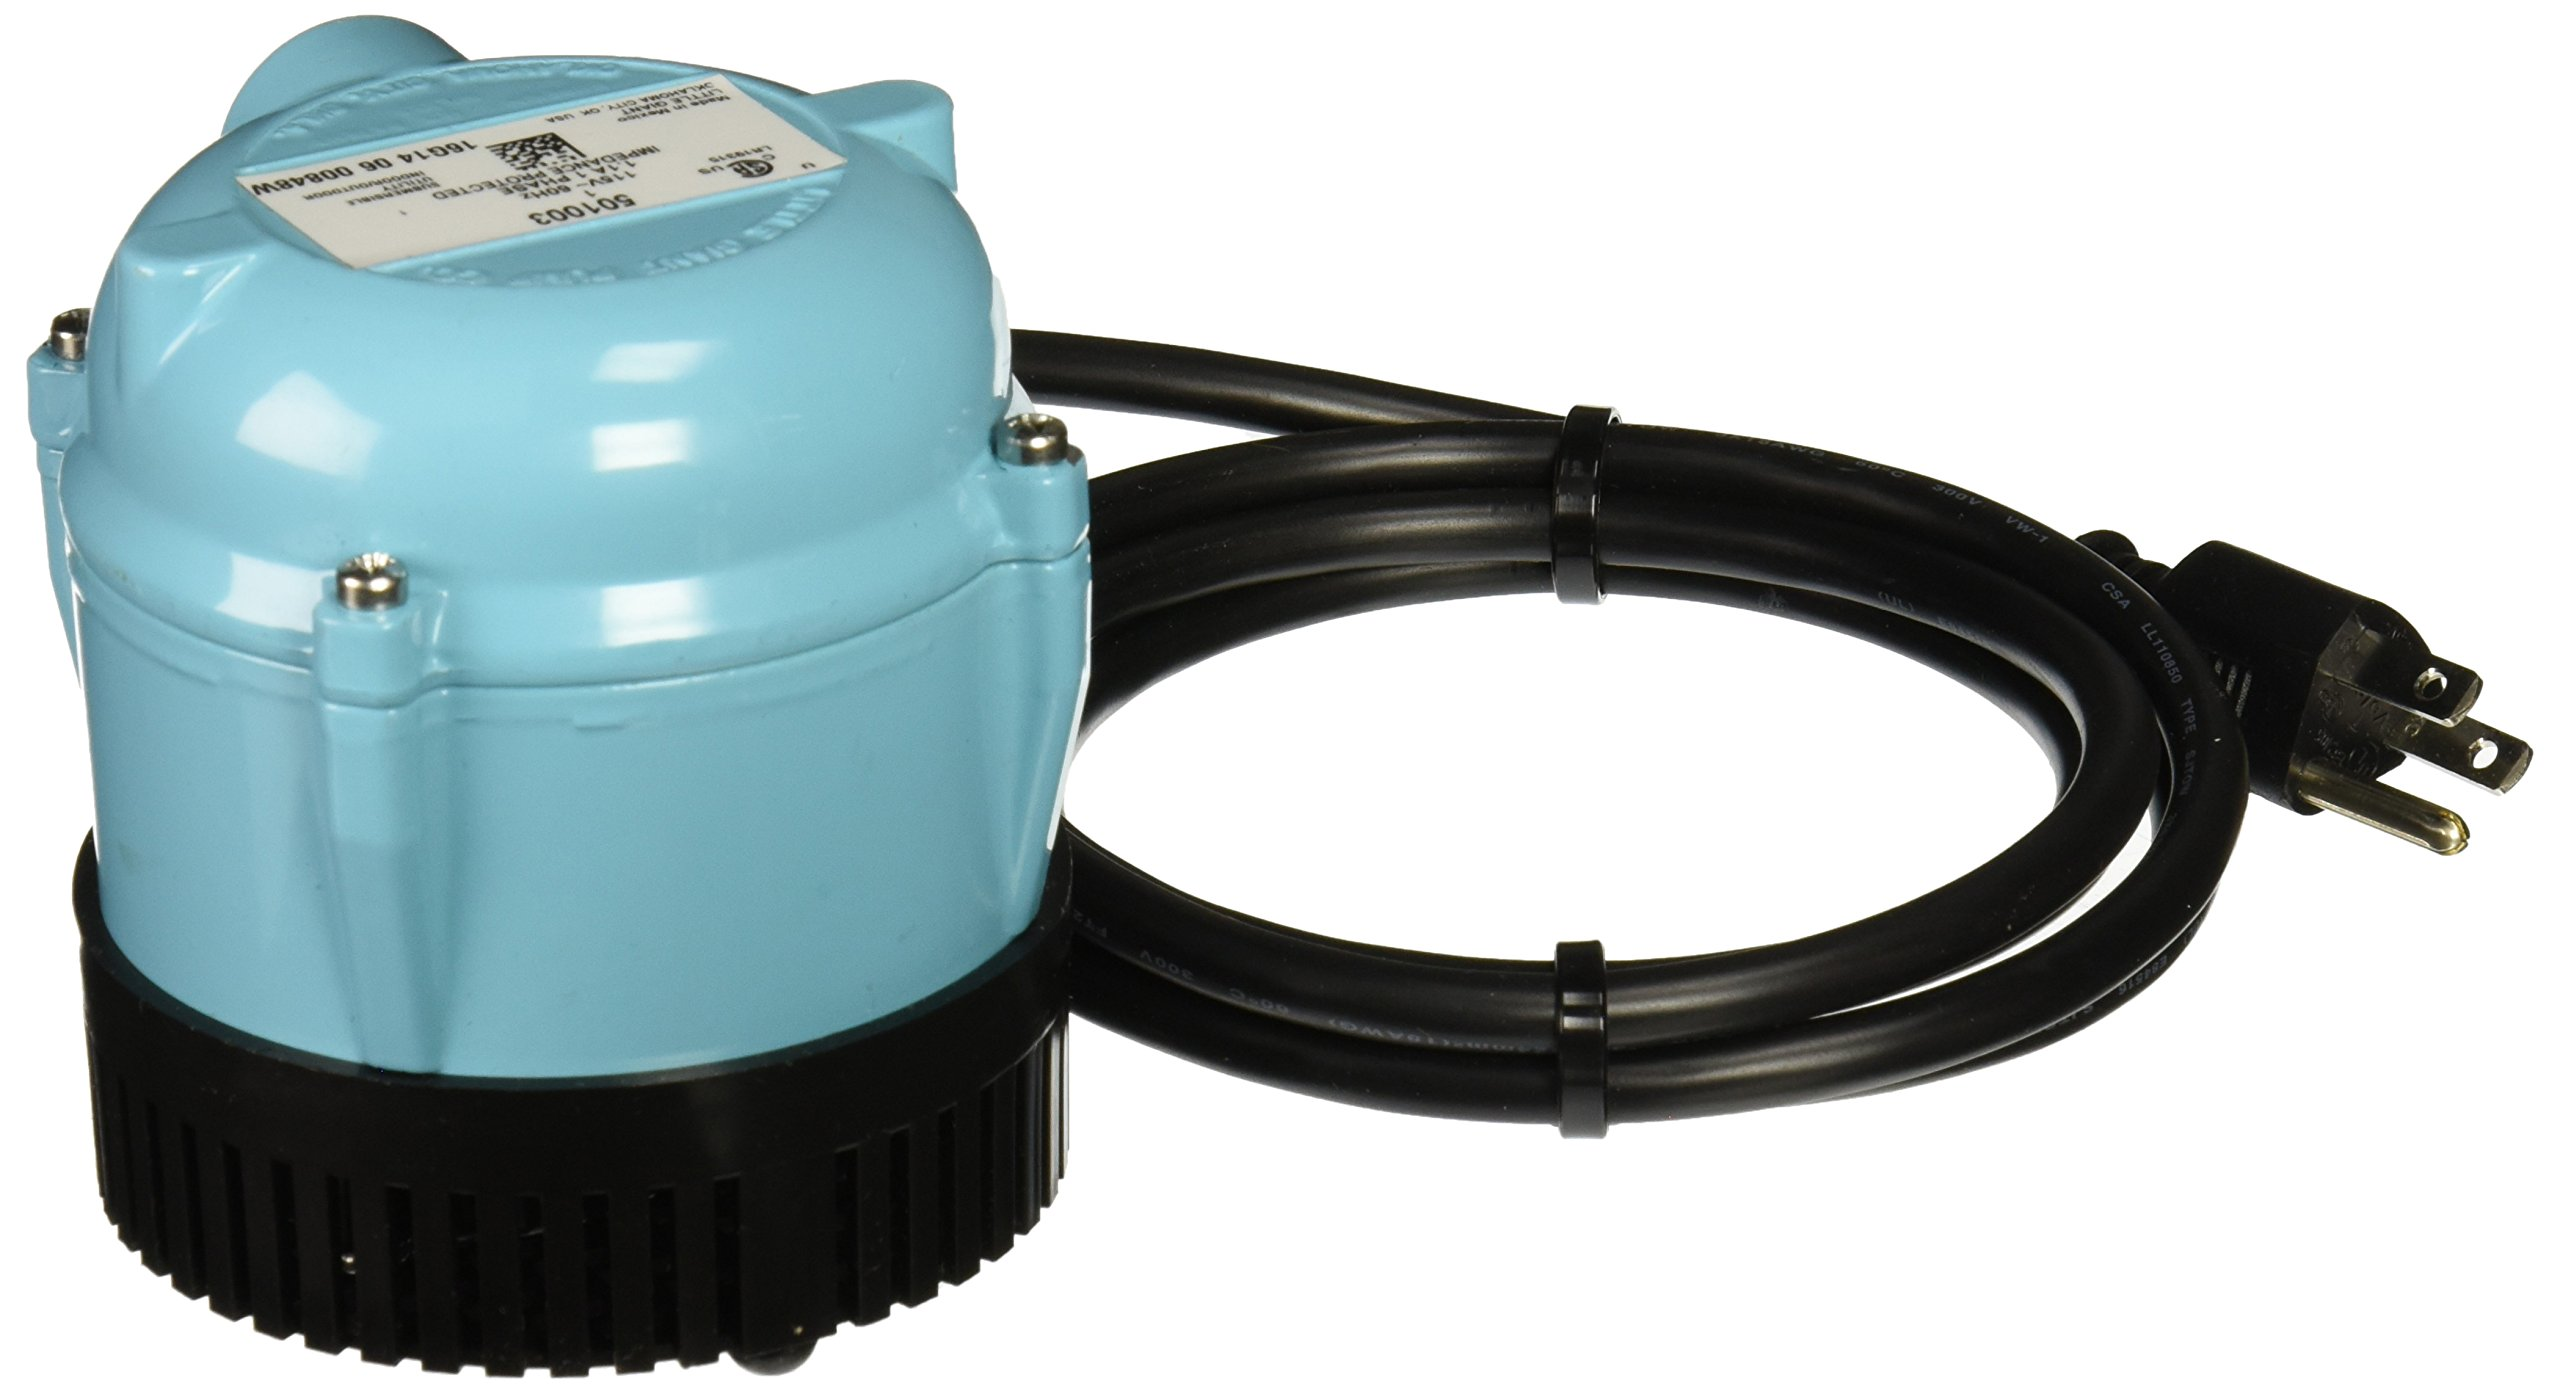 Little Giant 501003 1 115 Volt 205 GPH Oil-Filled Small Submersible Pump by LITTLE GIANT (Image #1)